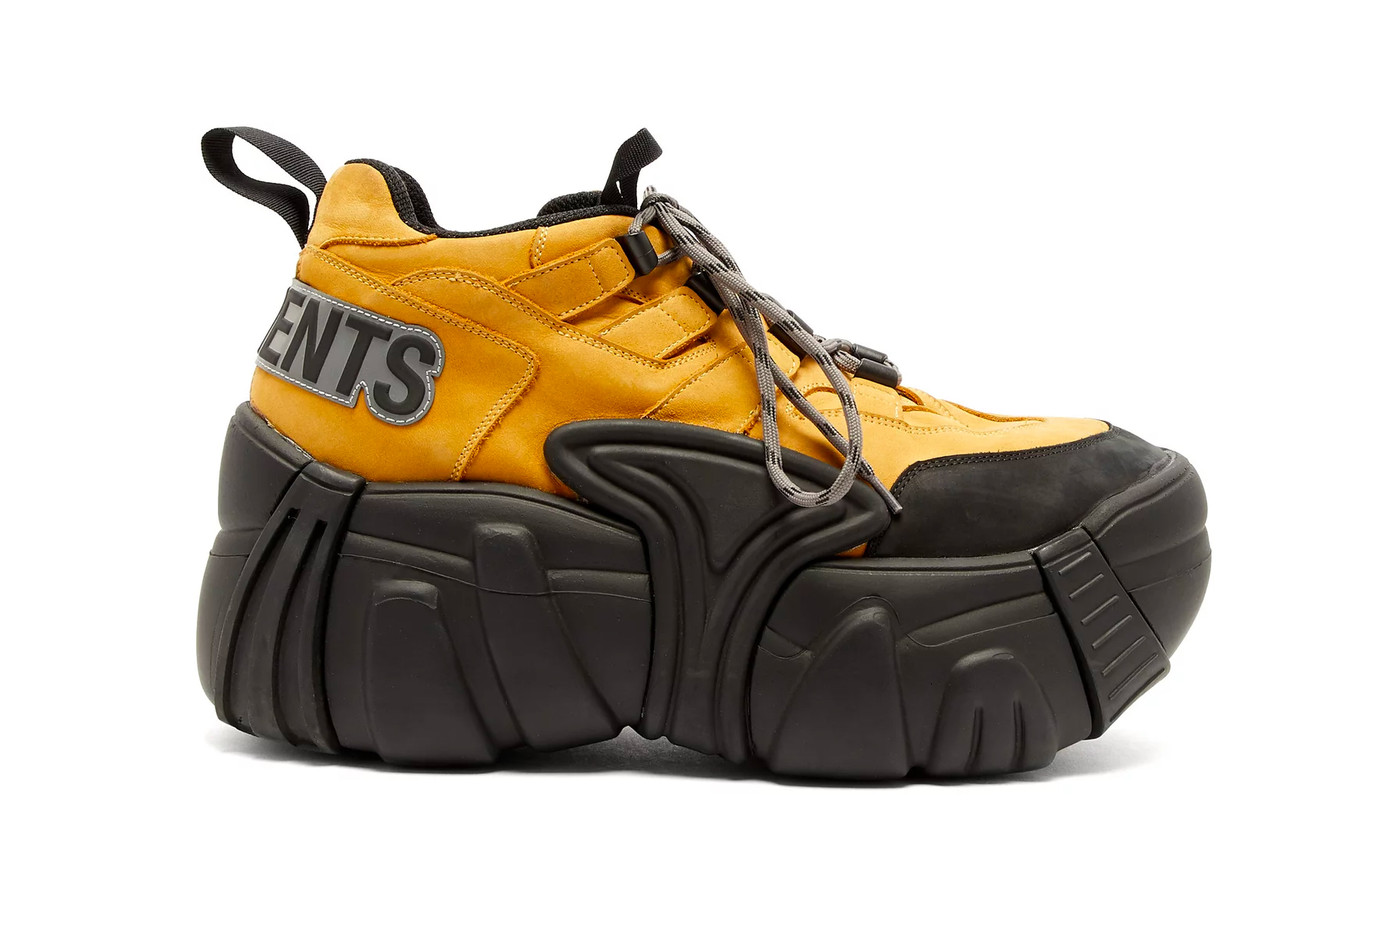 vetements x SWEAR sneaker. huge black platform with a yellow hiking-inspired top-half